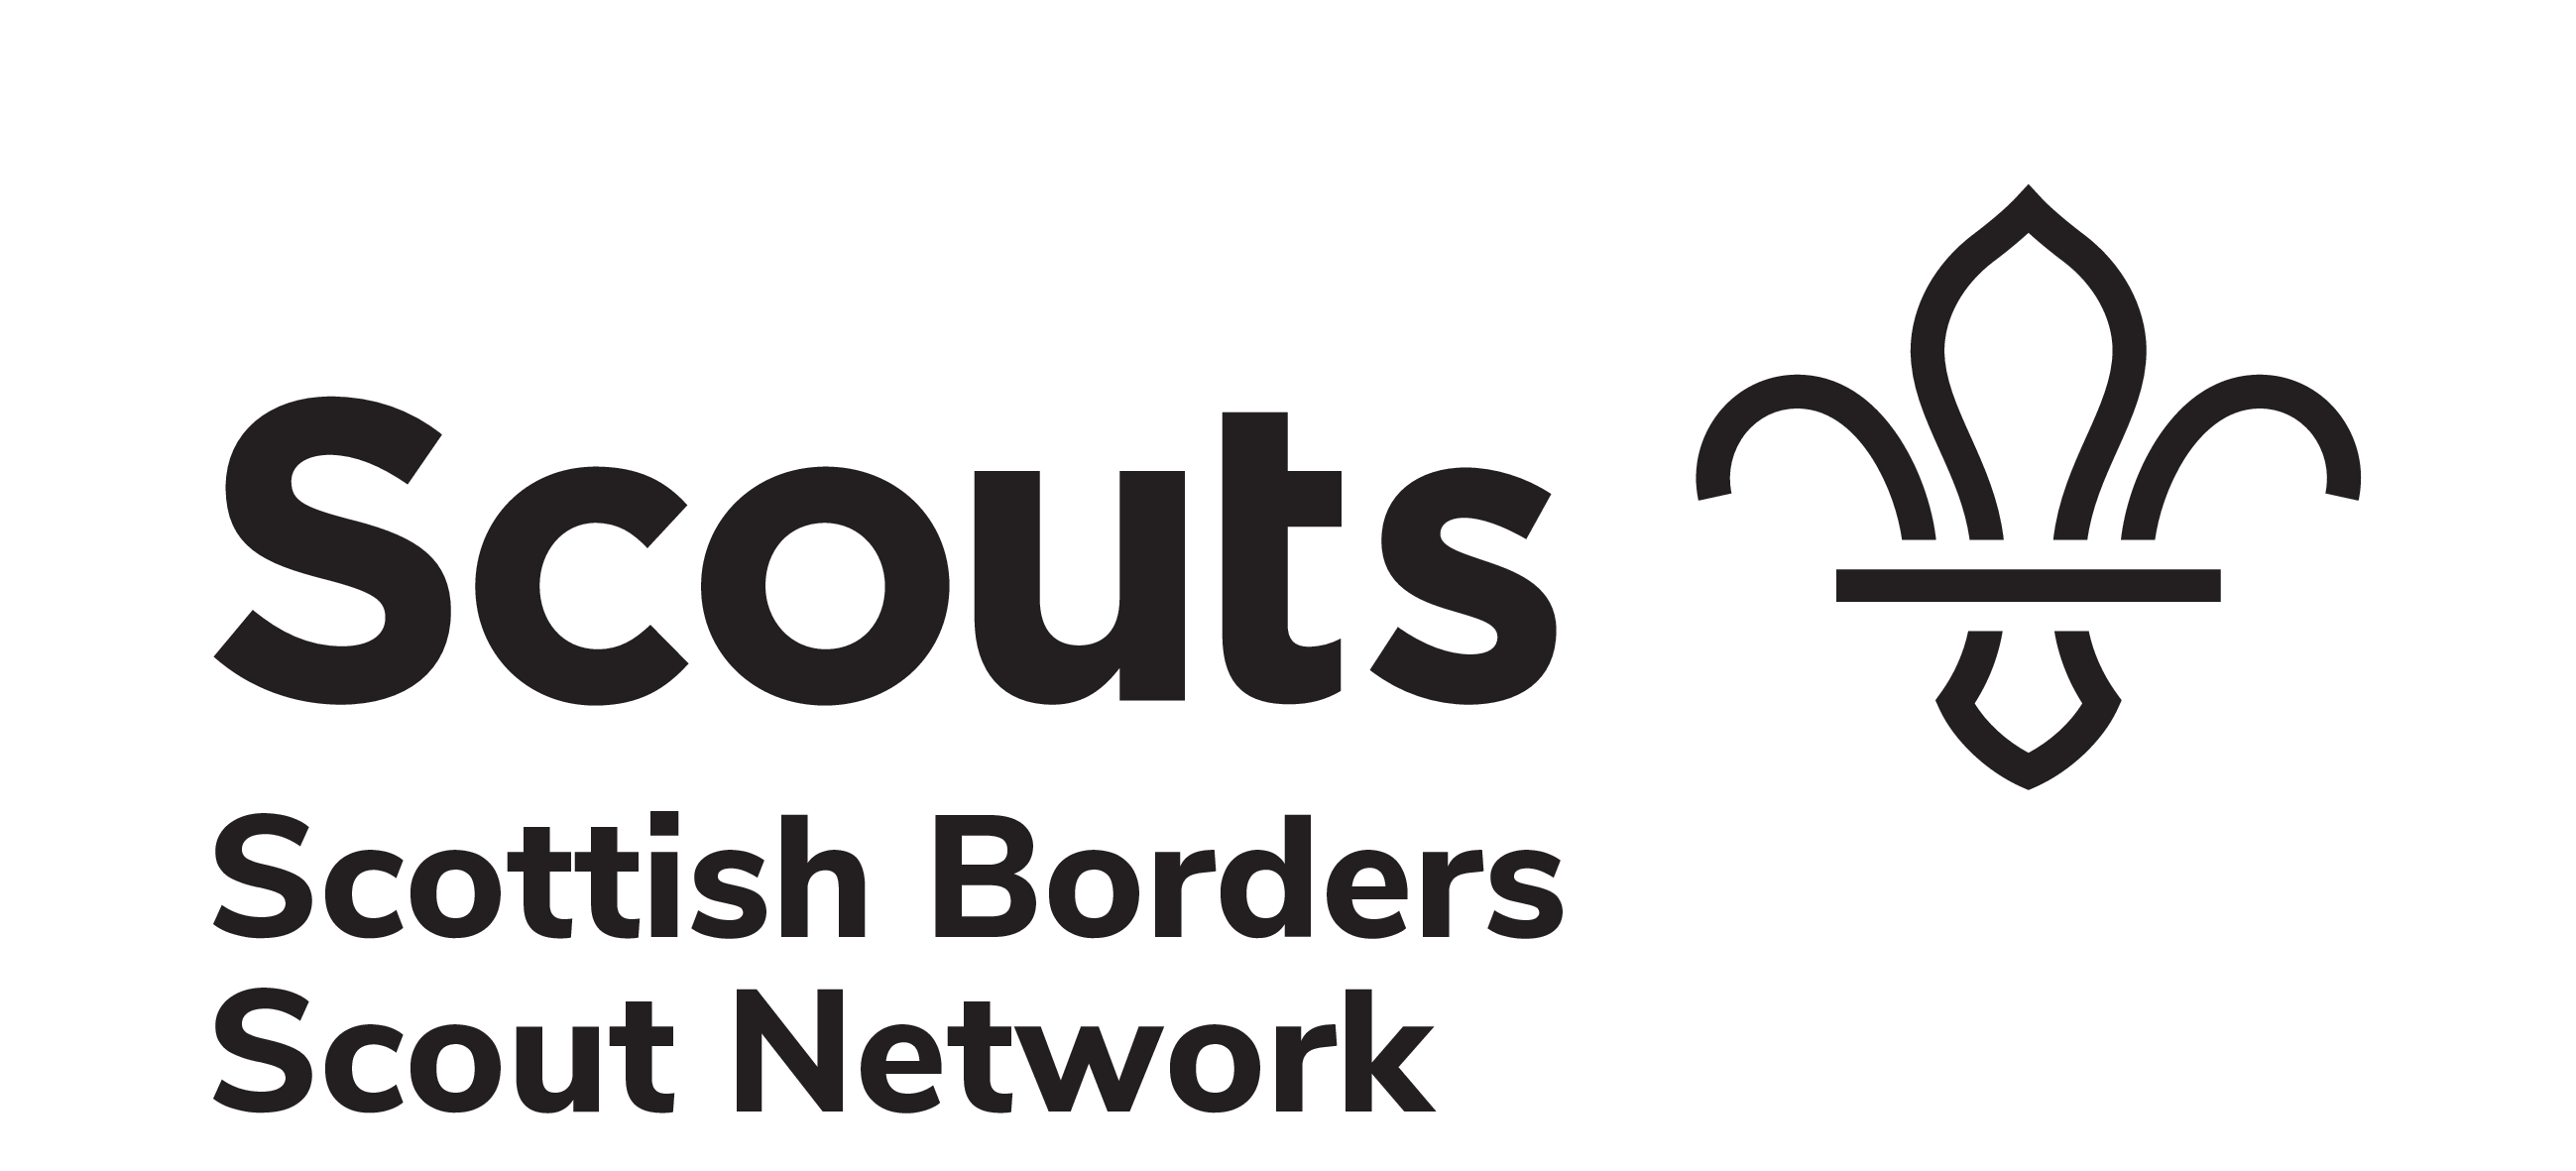 Scottish Borders Scout Network Logo